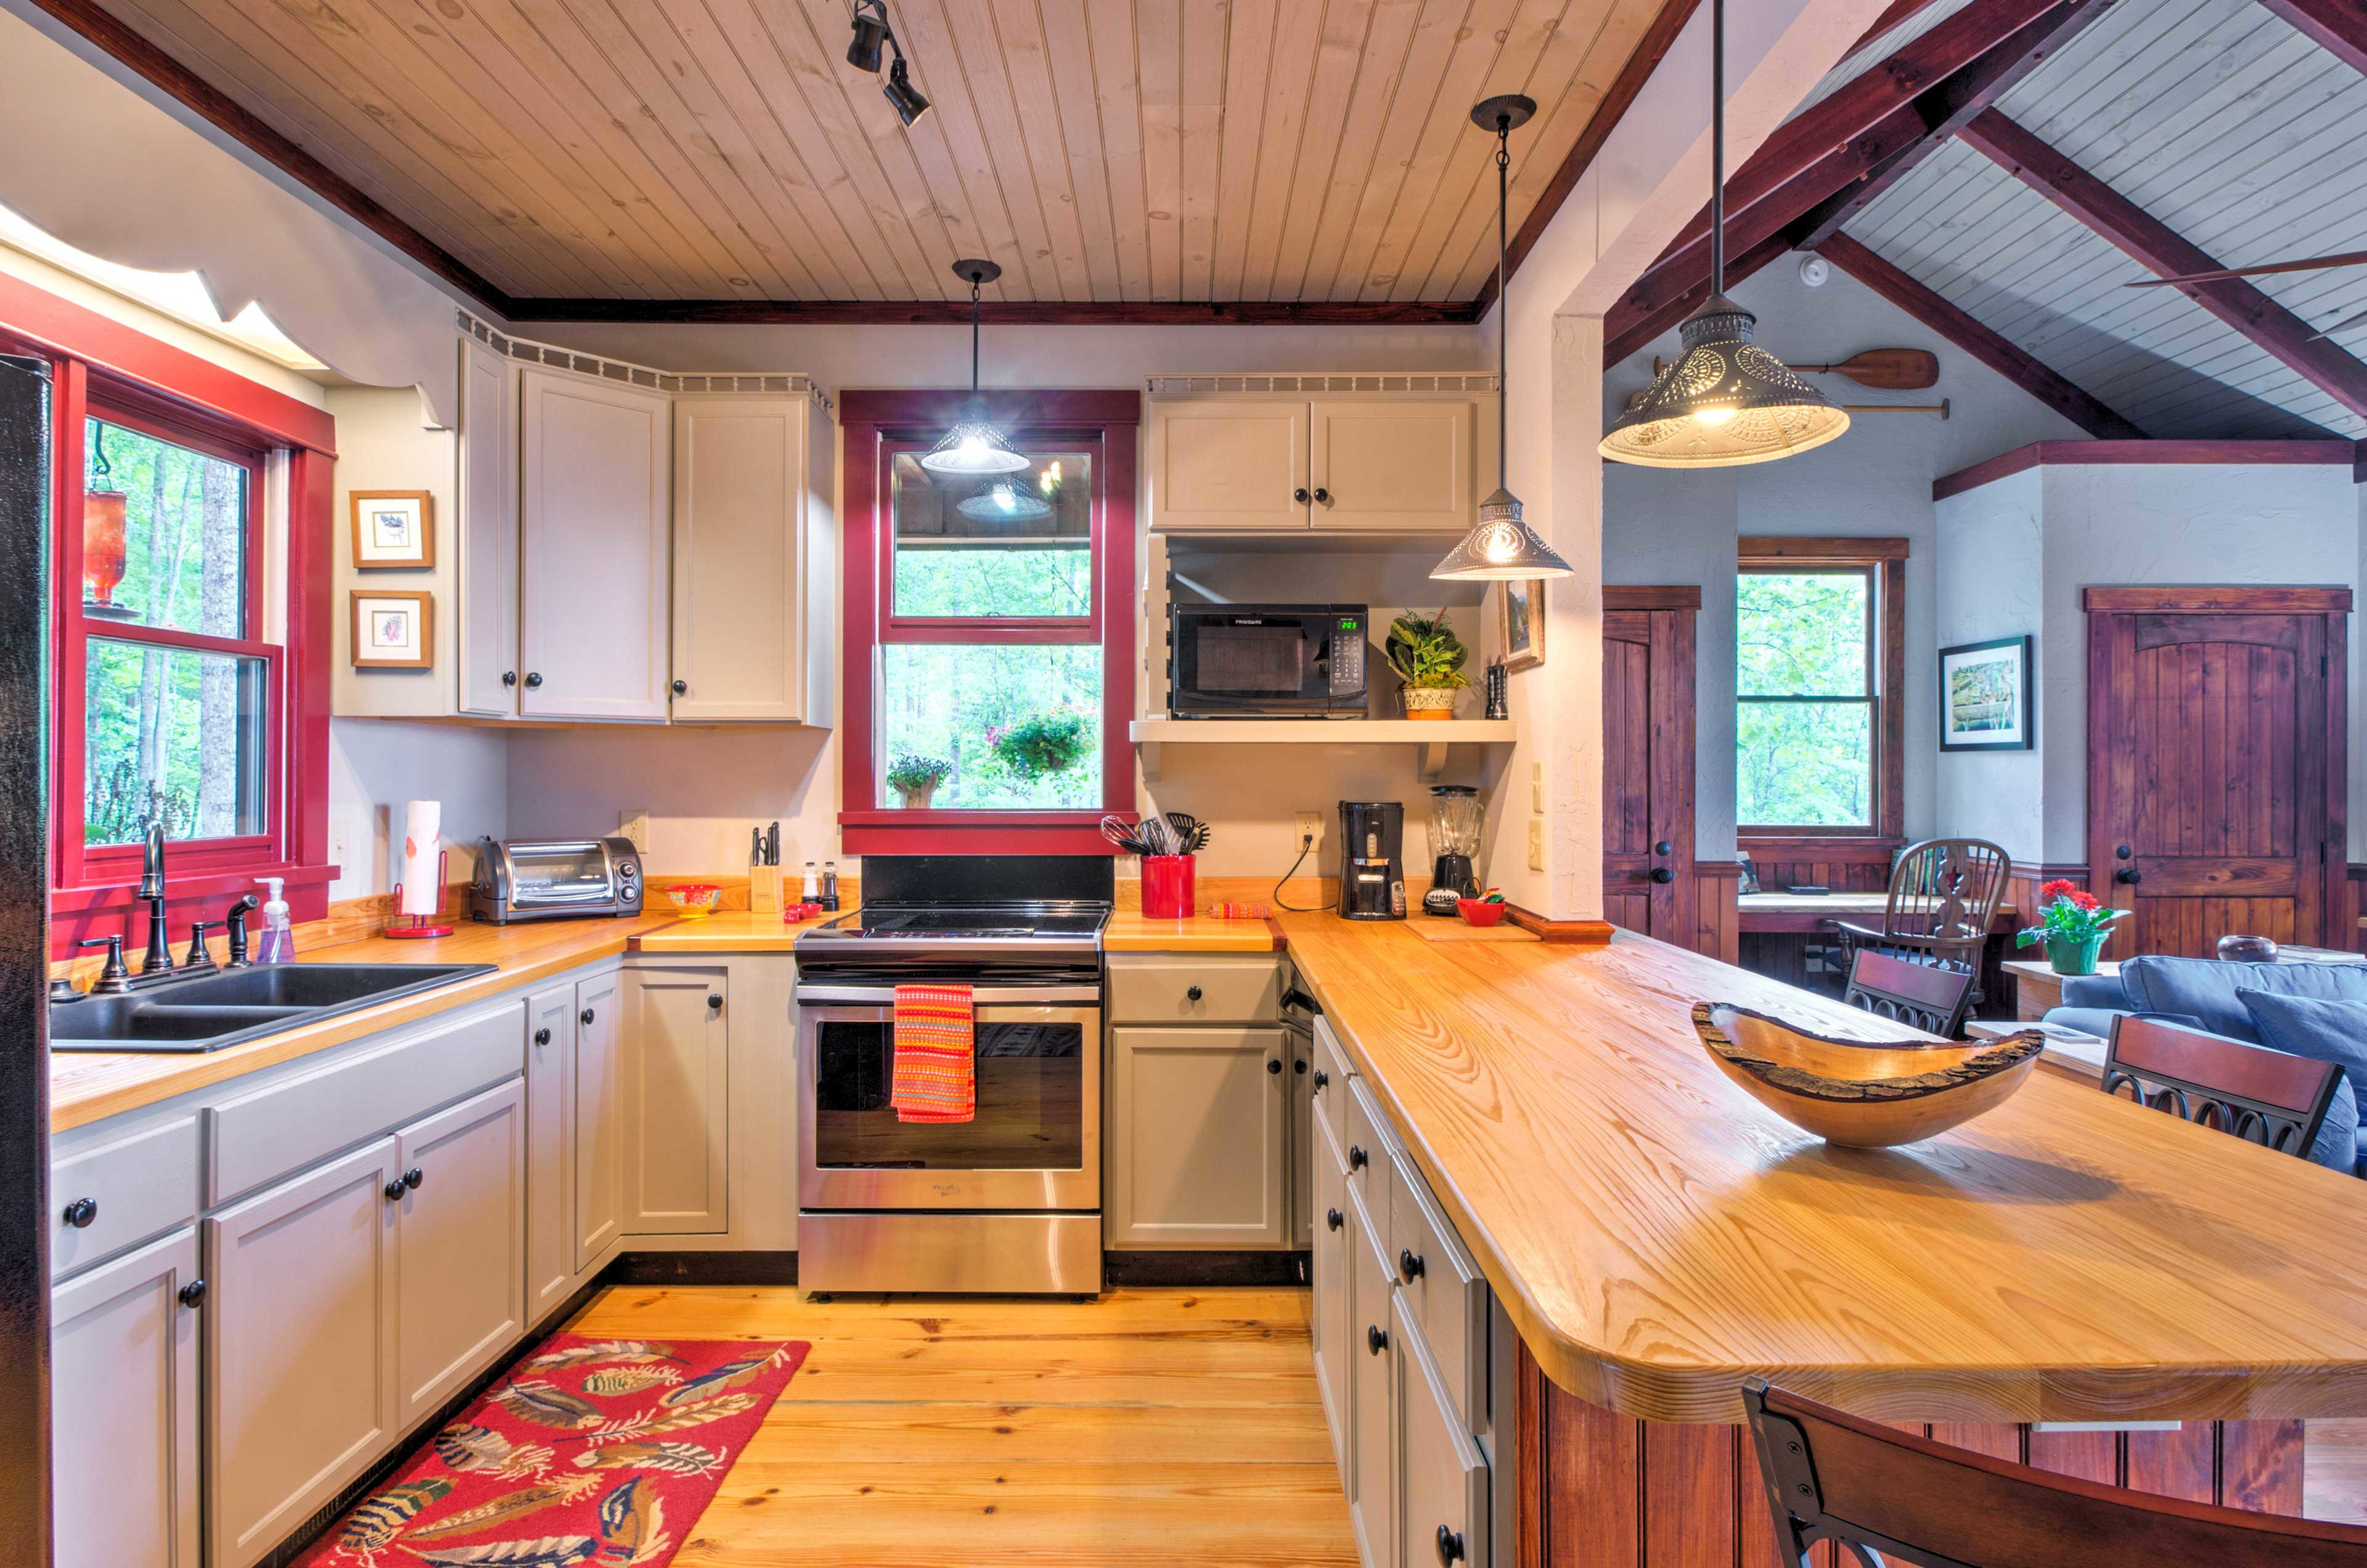 The spacious kitchen is great for those who love to cook.